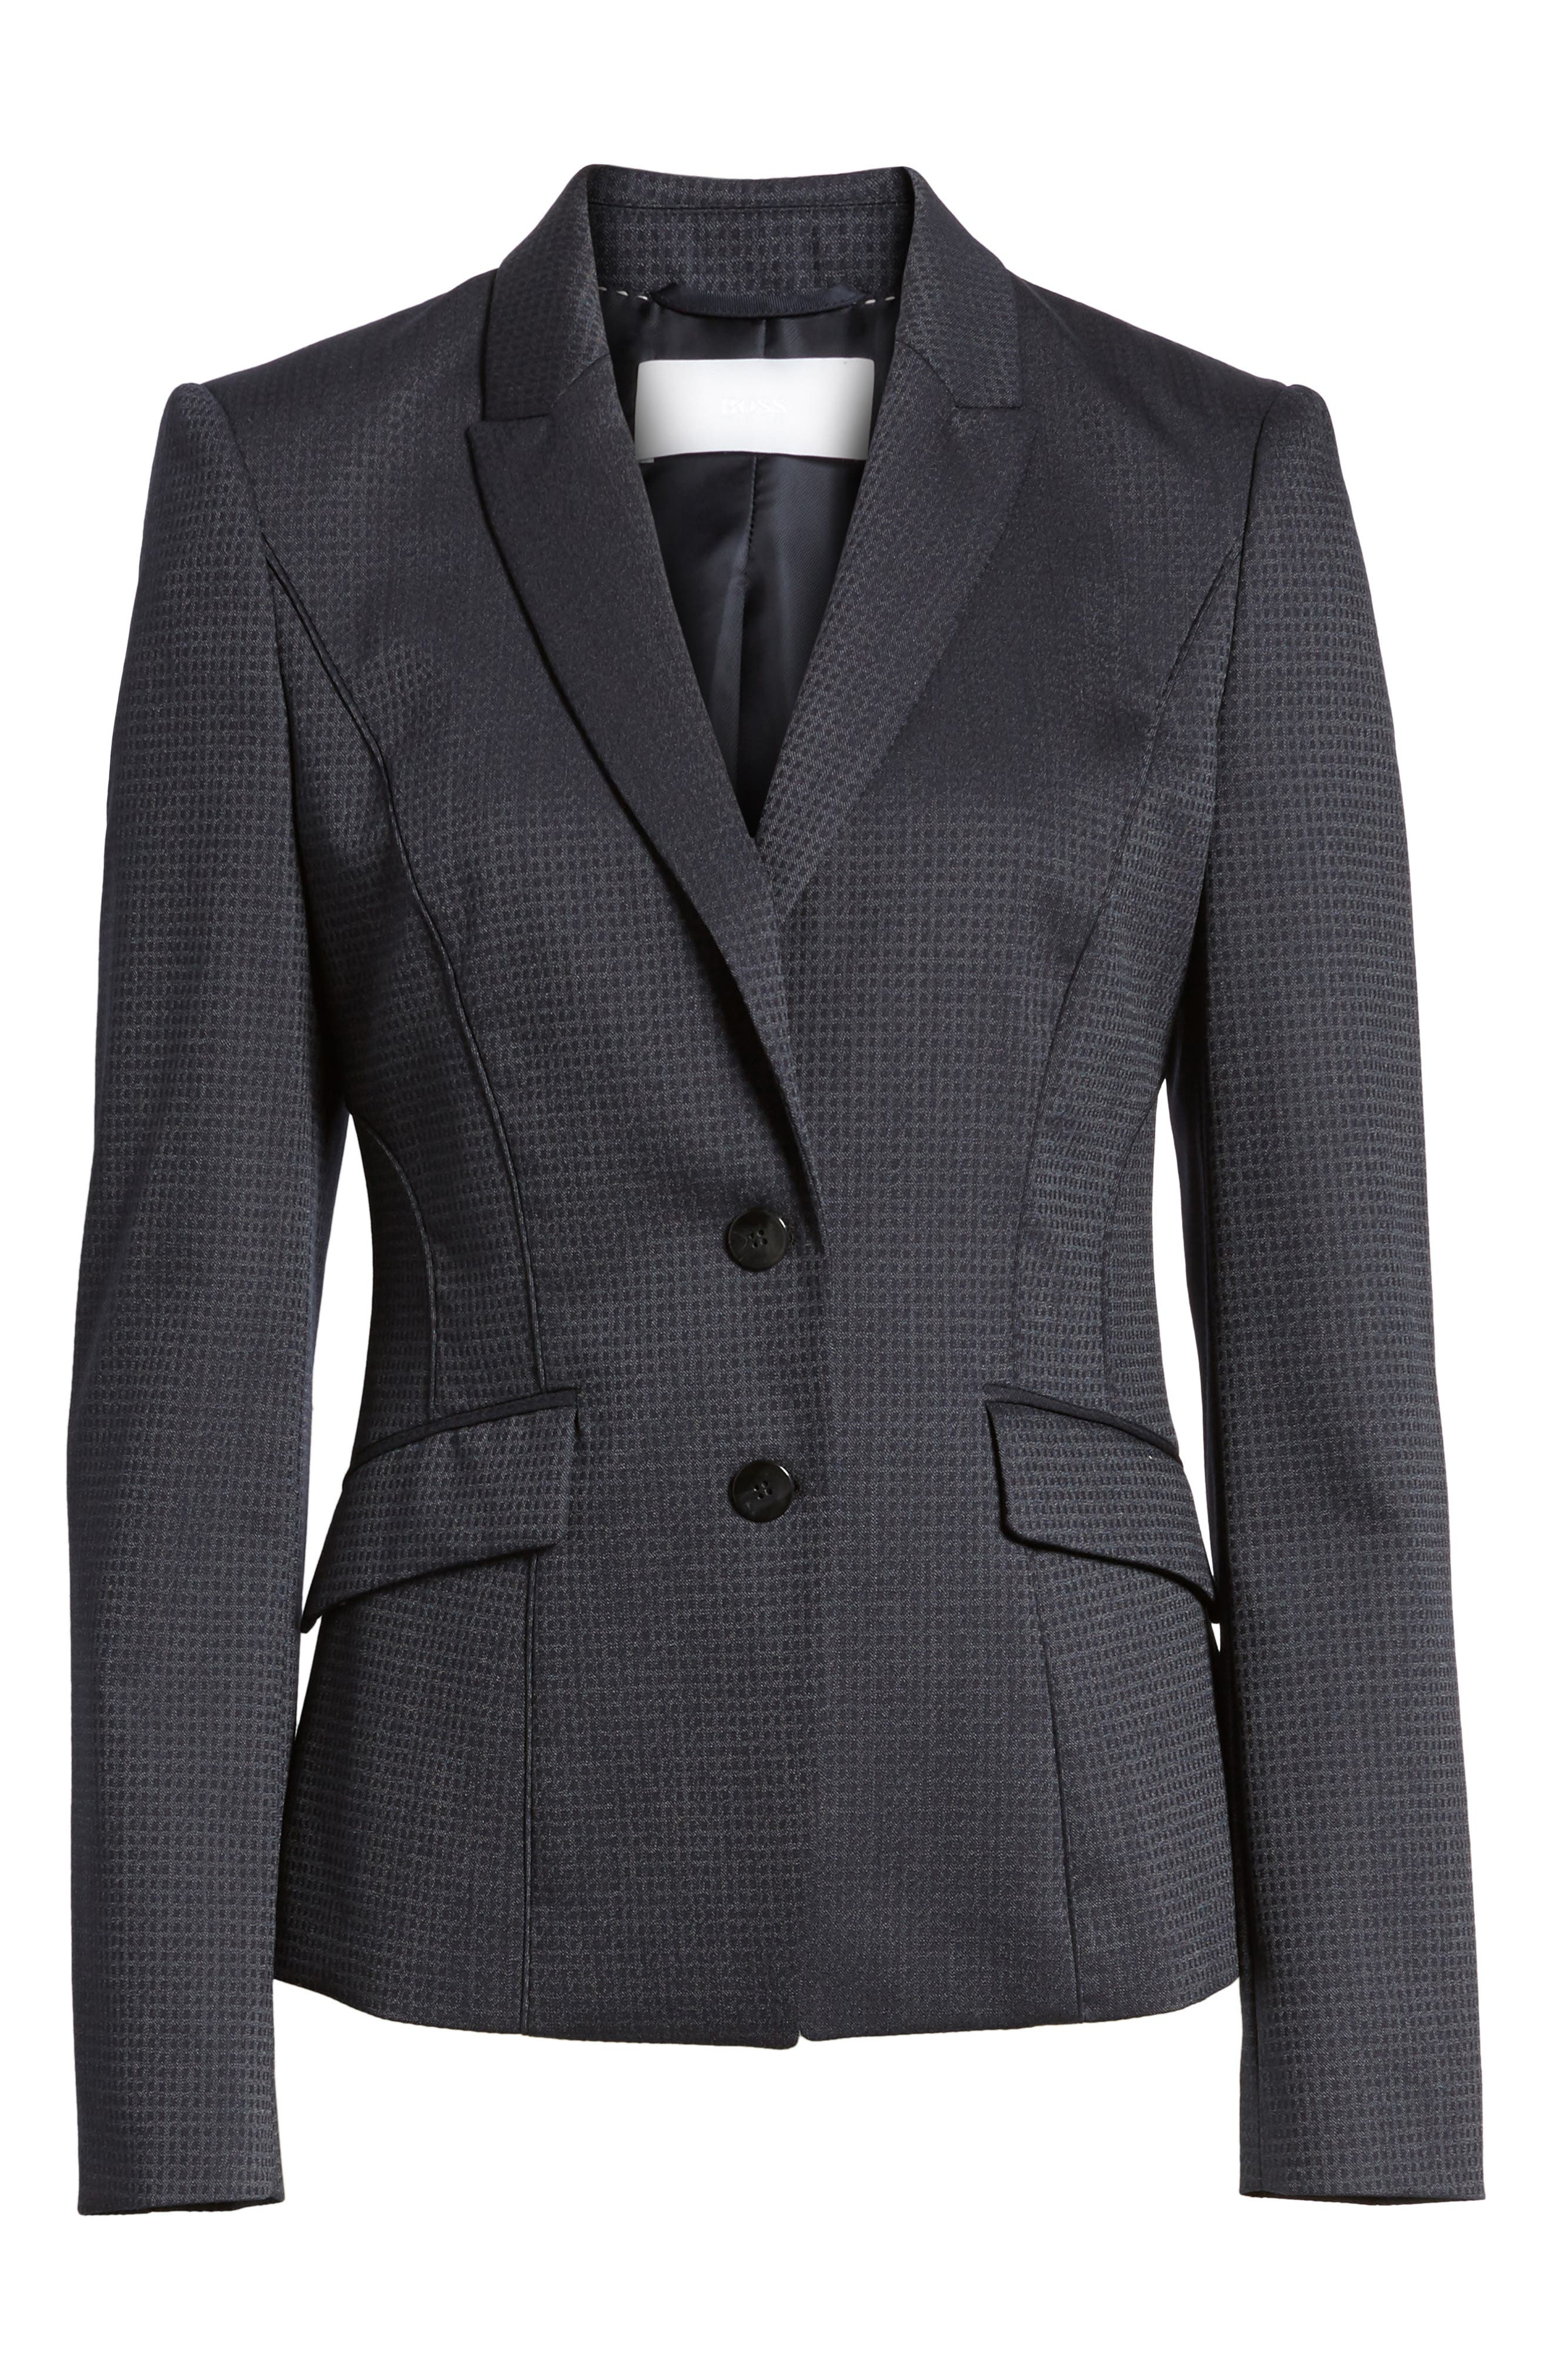 Main Image - BOSS Jukani Check Wool Blend Suit Jacket (Petite)